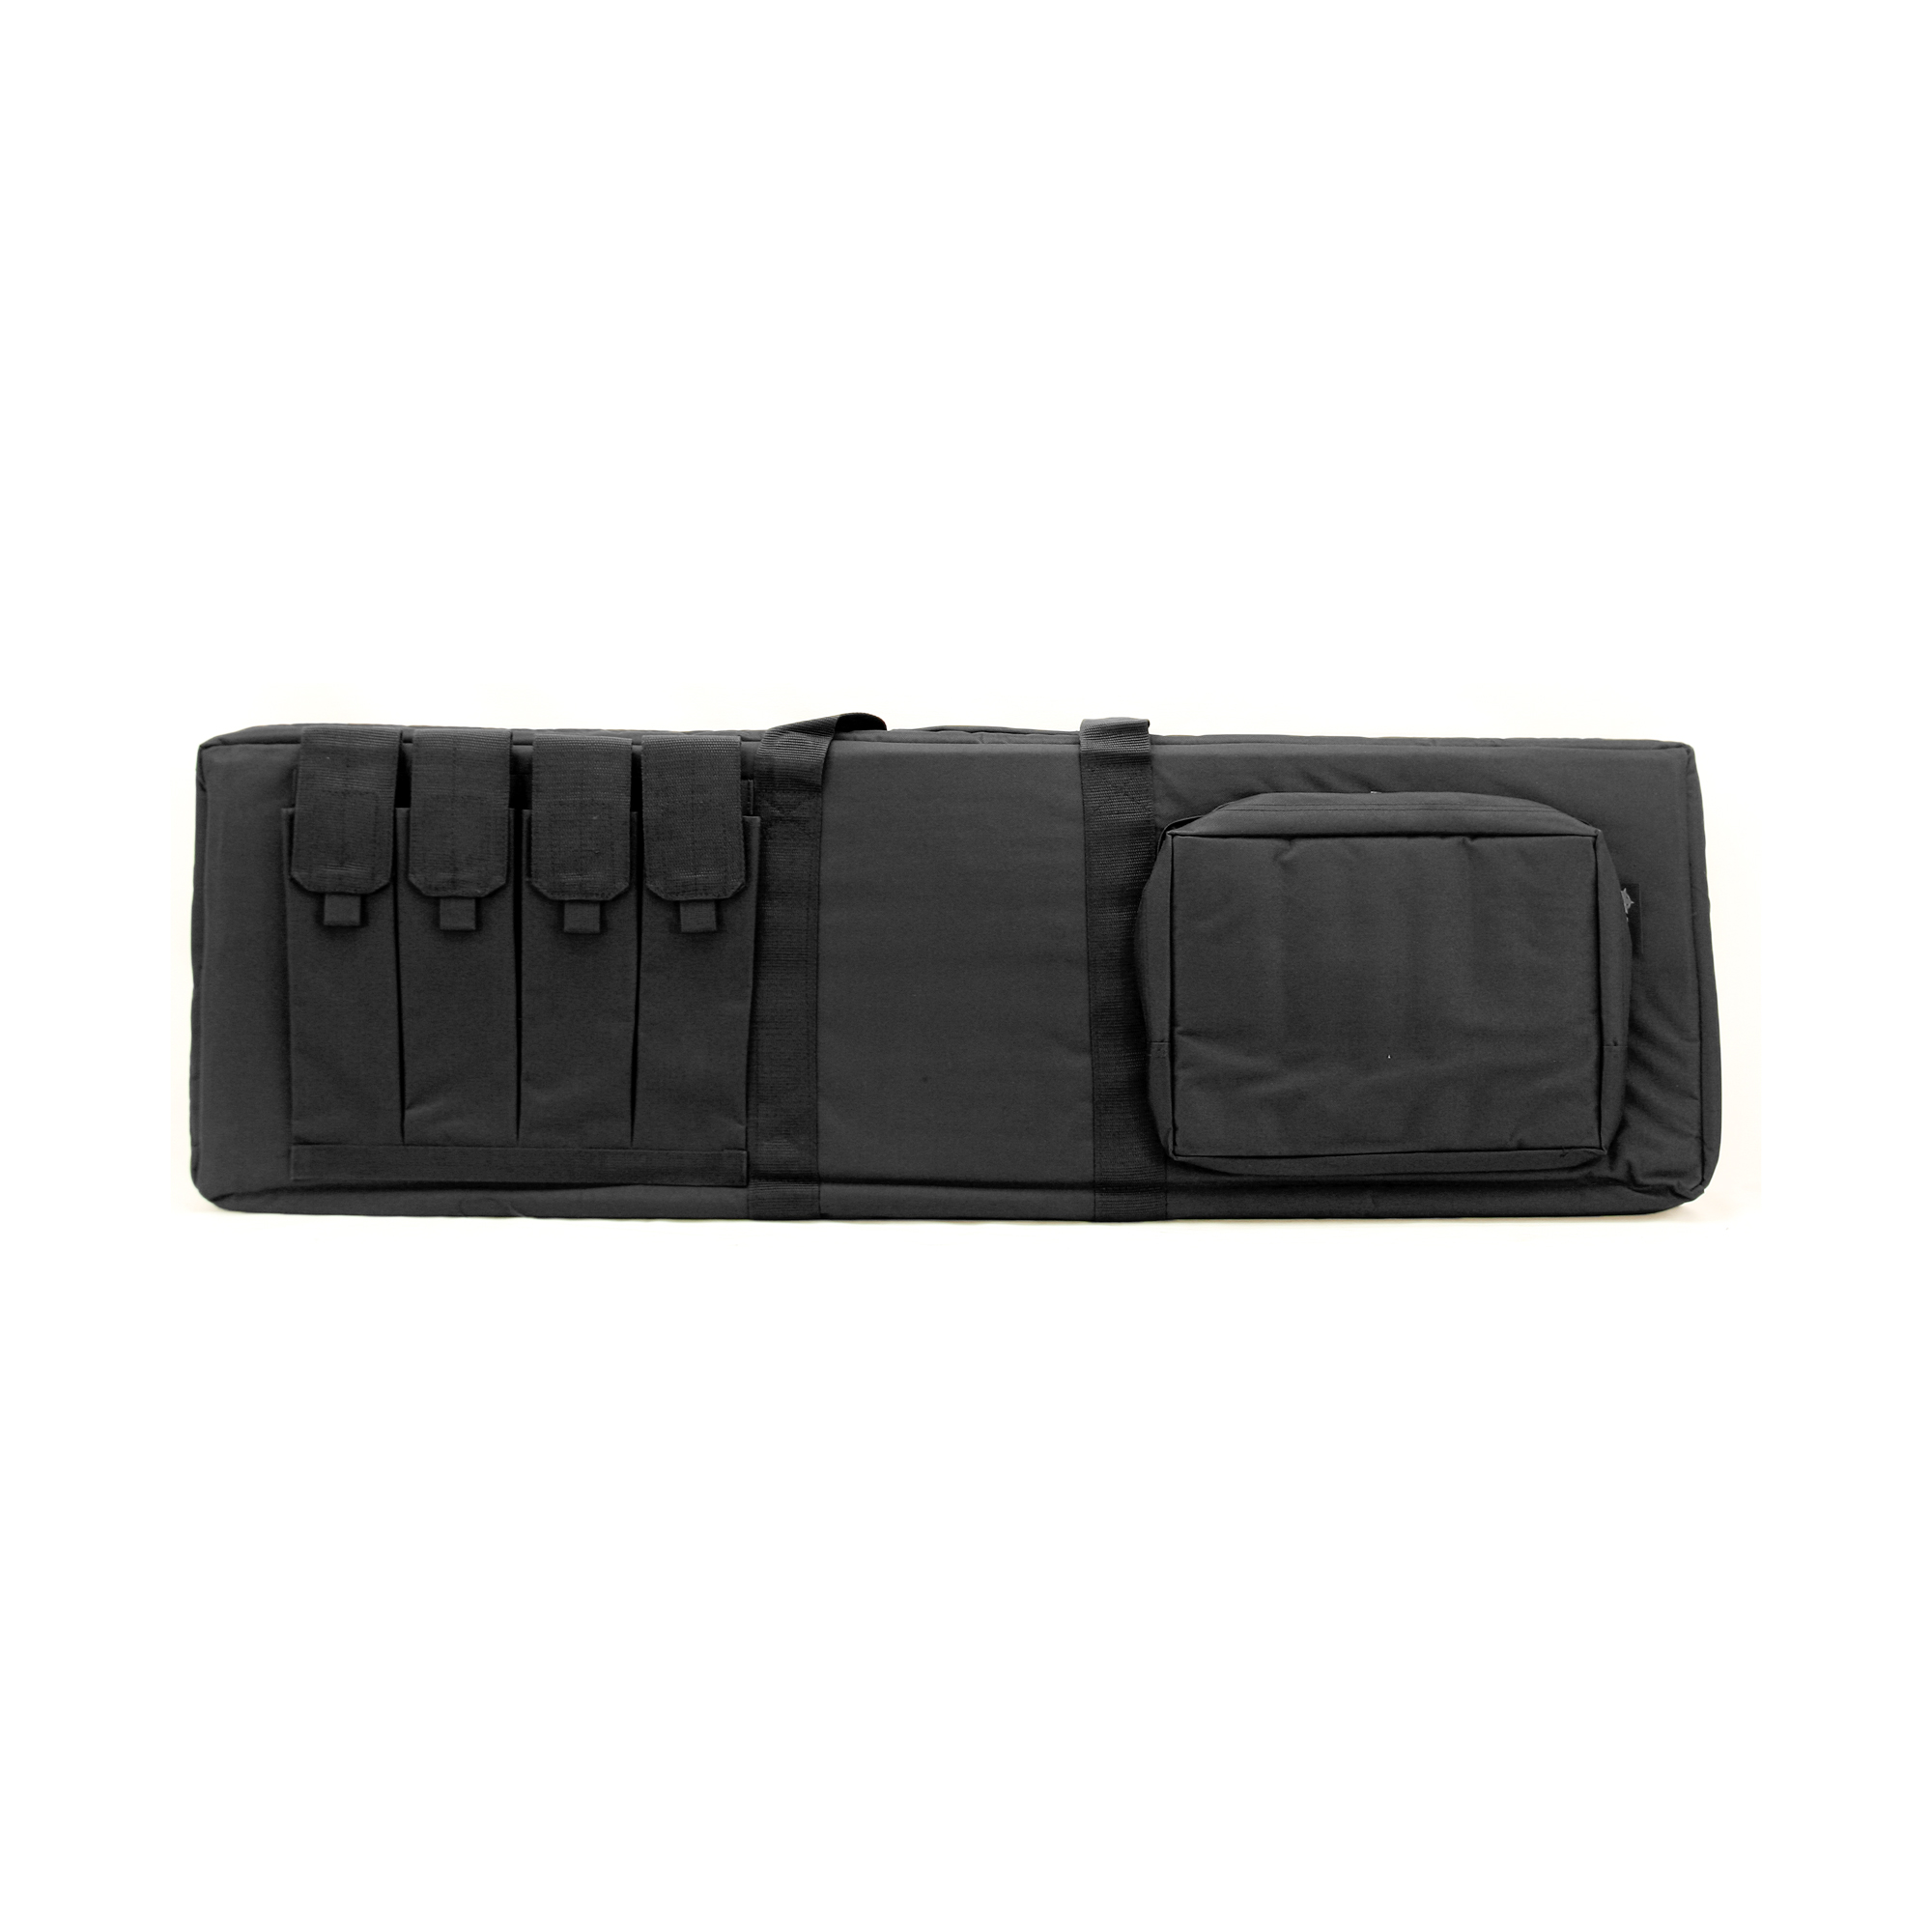 The US PeaceKeeper Tactical Combination Case was designed for the officer or shooter that wants to carry both a shotgun & rifle to the range. This case offers two (2) webbing systems to secure your rifle and shotgun and a thick (0.5) padded divider between guns protecting each gun's finish from damages. The exterior pockets are padded and large to hold ammo and your range gear. Double zipper allows the case to be locked.